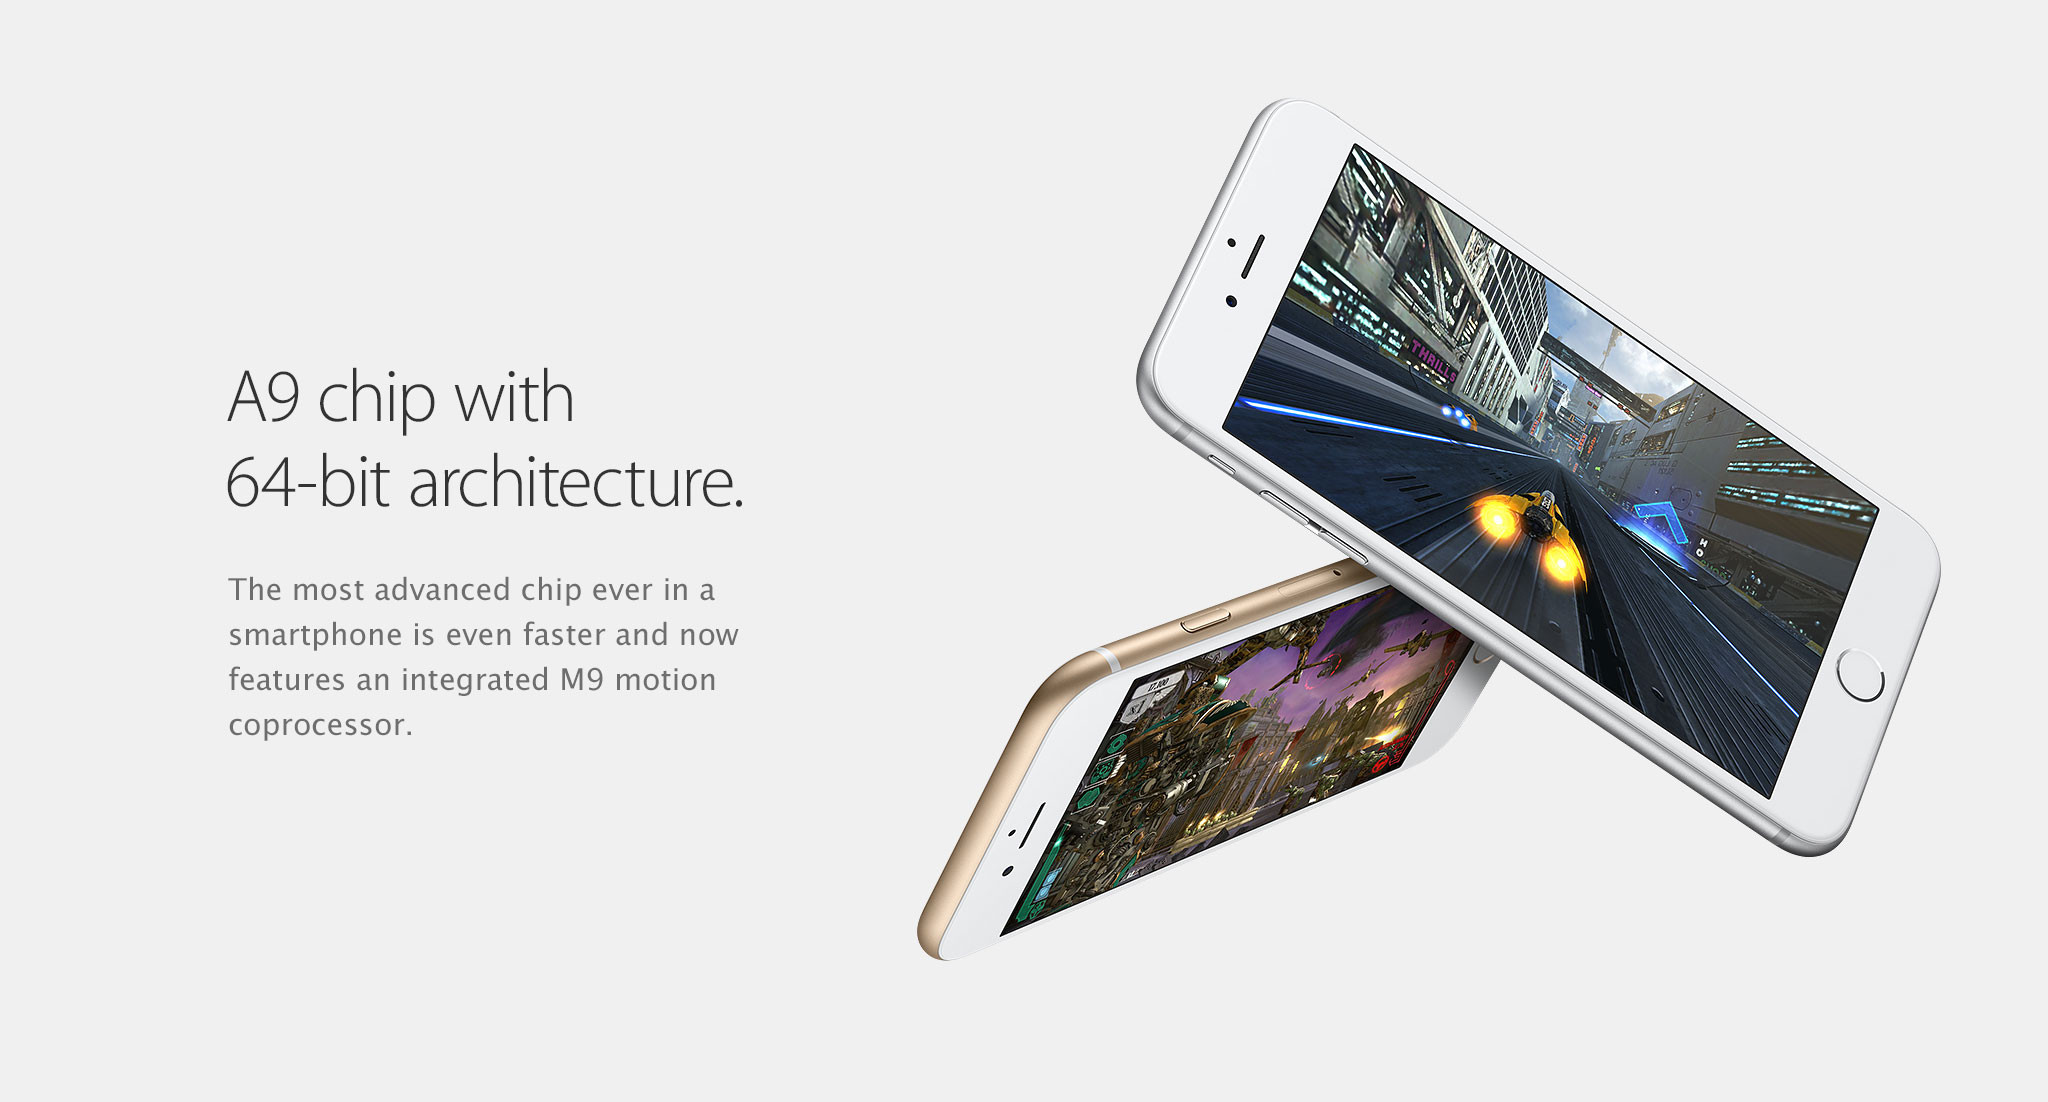 A9 chip with 64-bit architecture. The most advanced chip ever in a smartphone is even faster and now features an integrated M9 motion coprocessor.